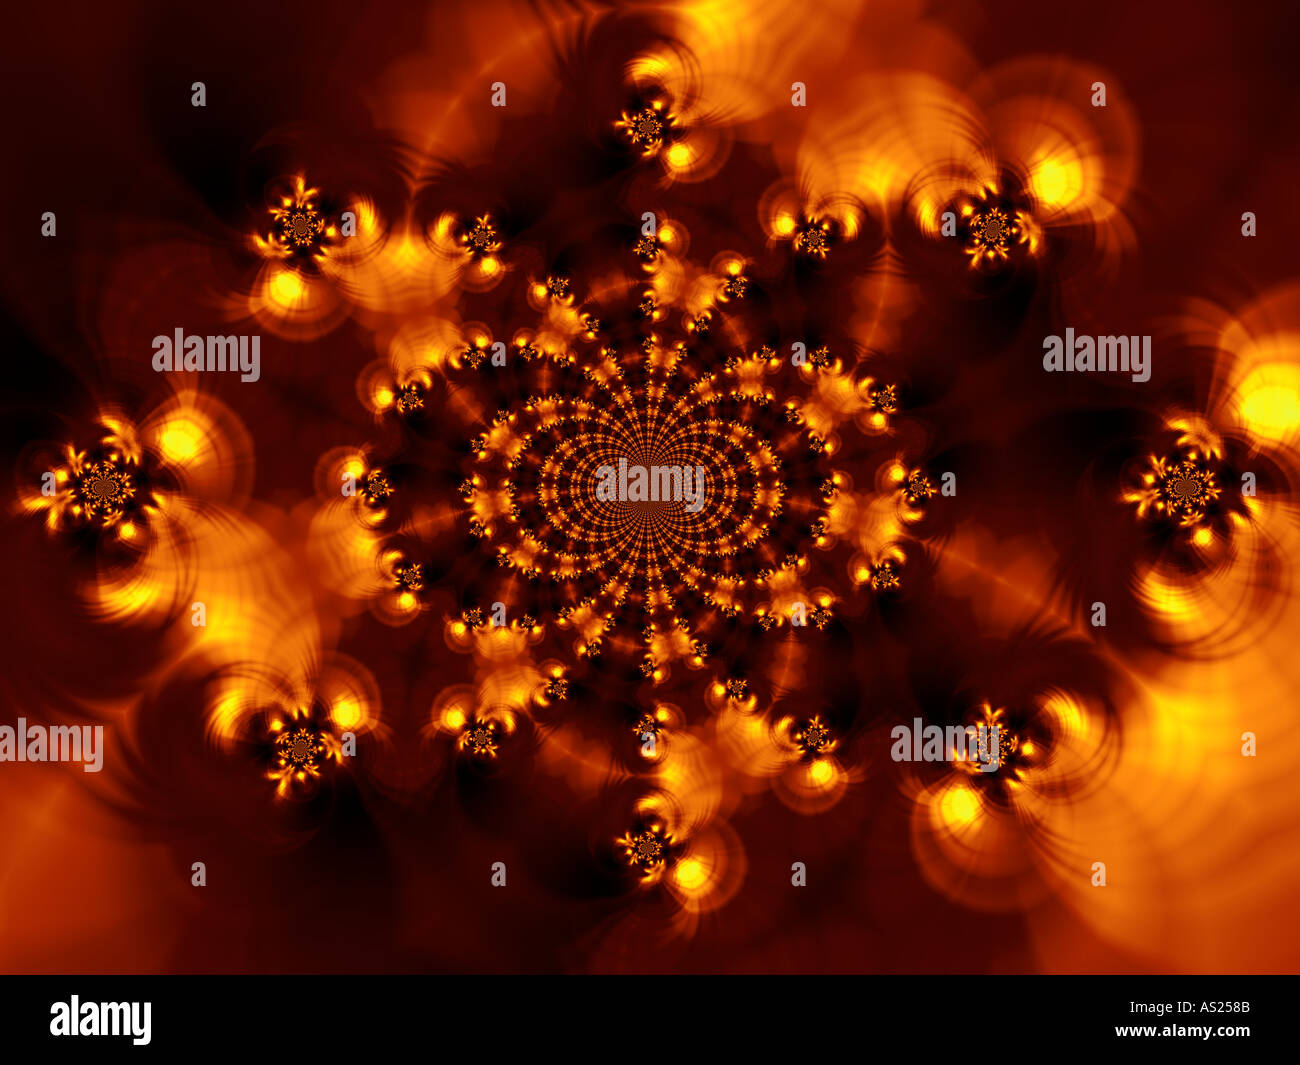 Star dance - Stock Image